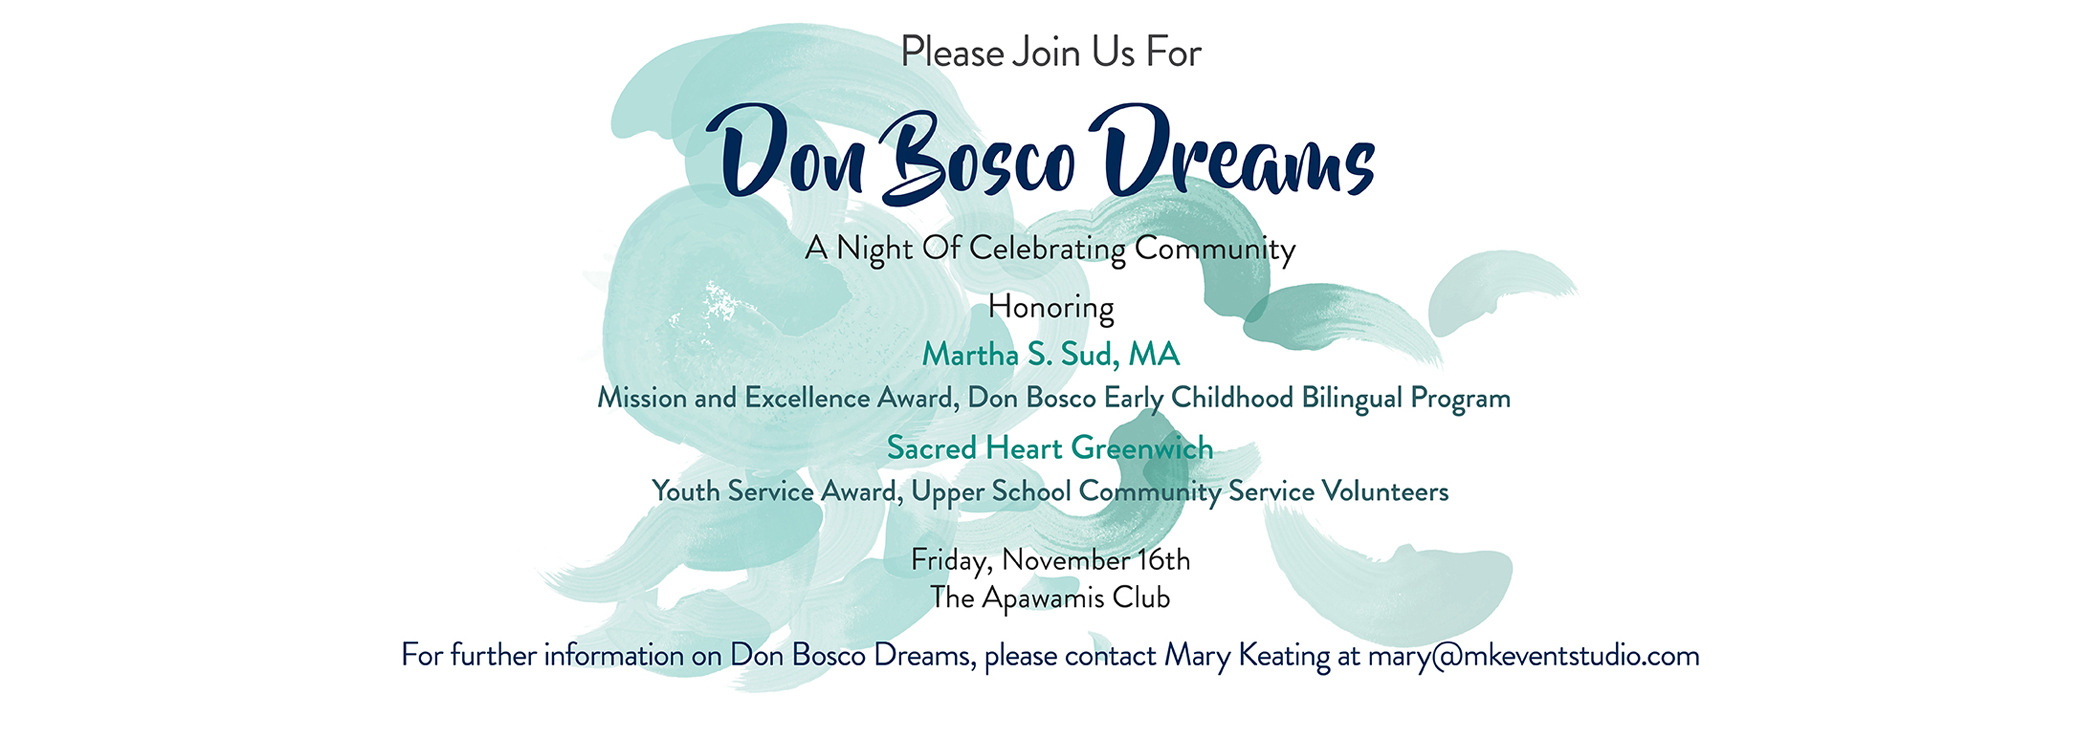 Join Us for Don Bosco Dreams 2018